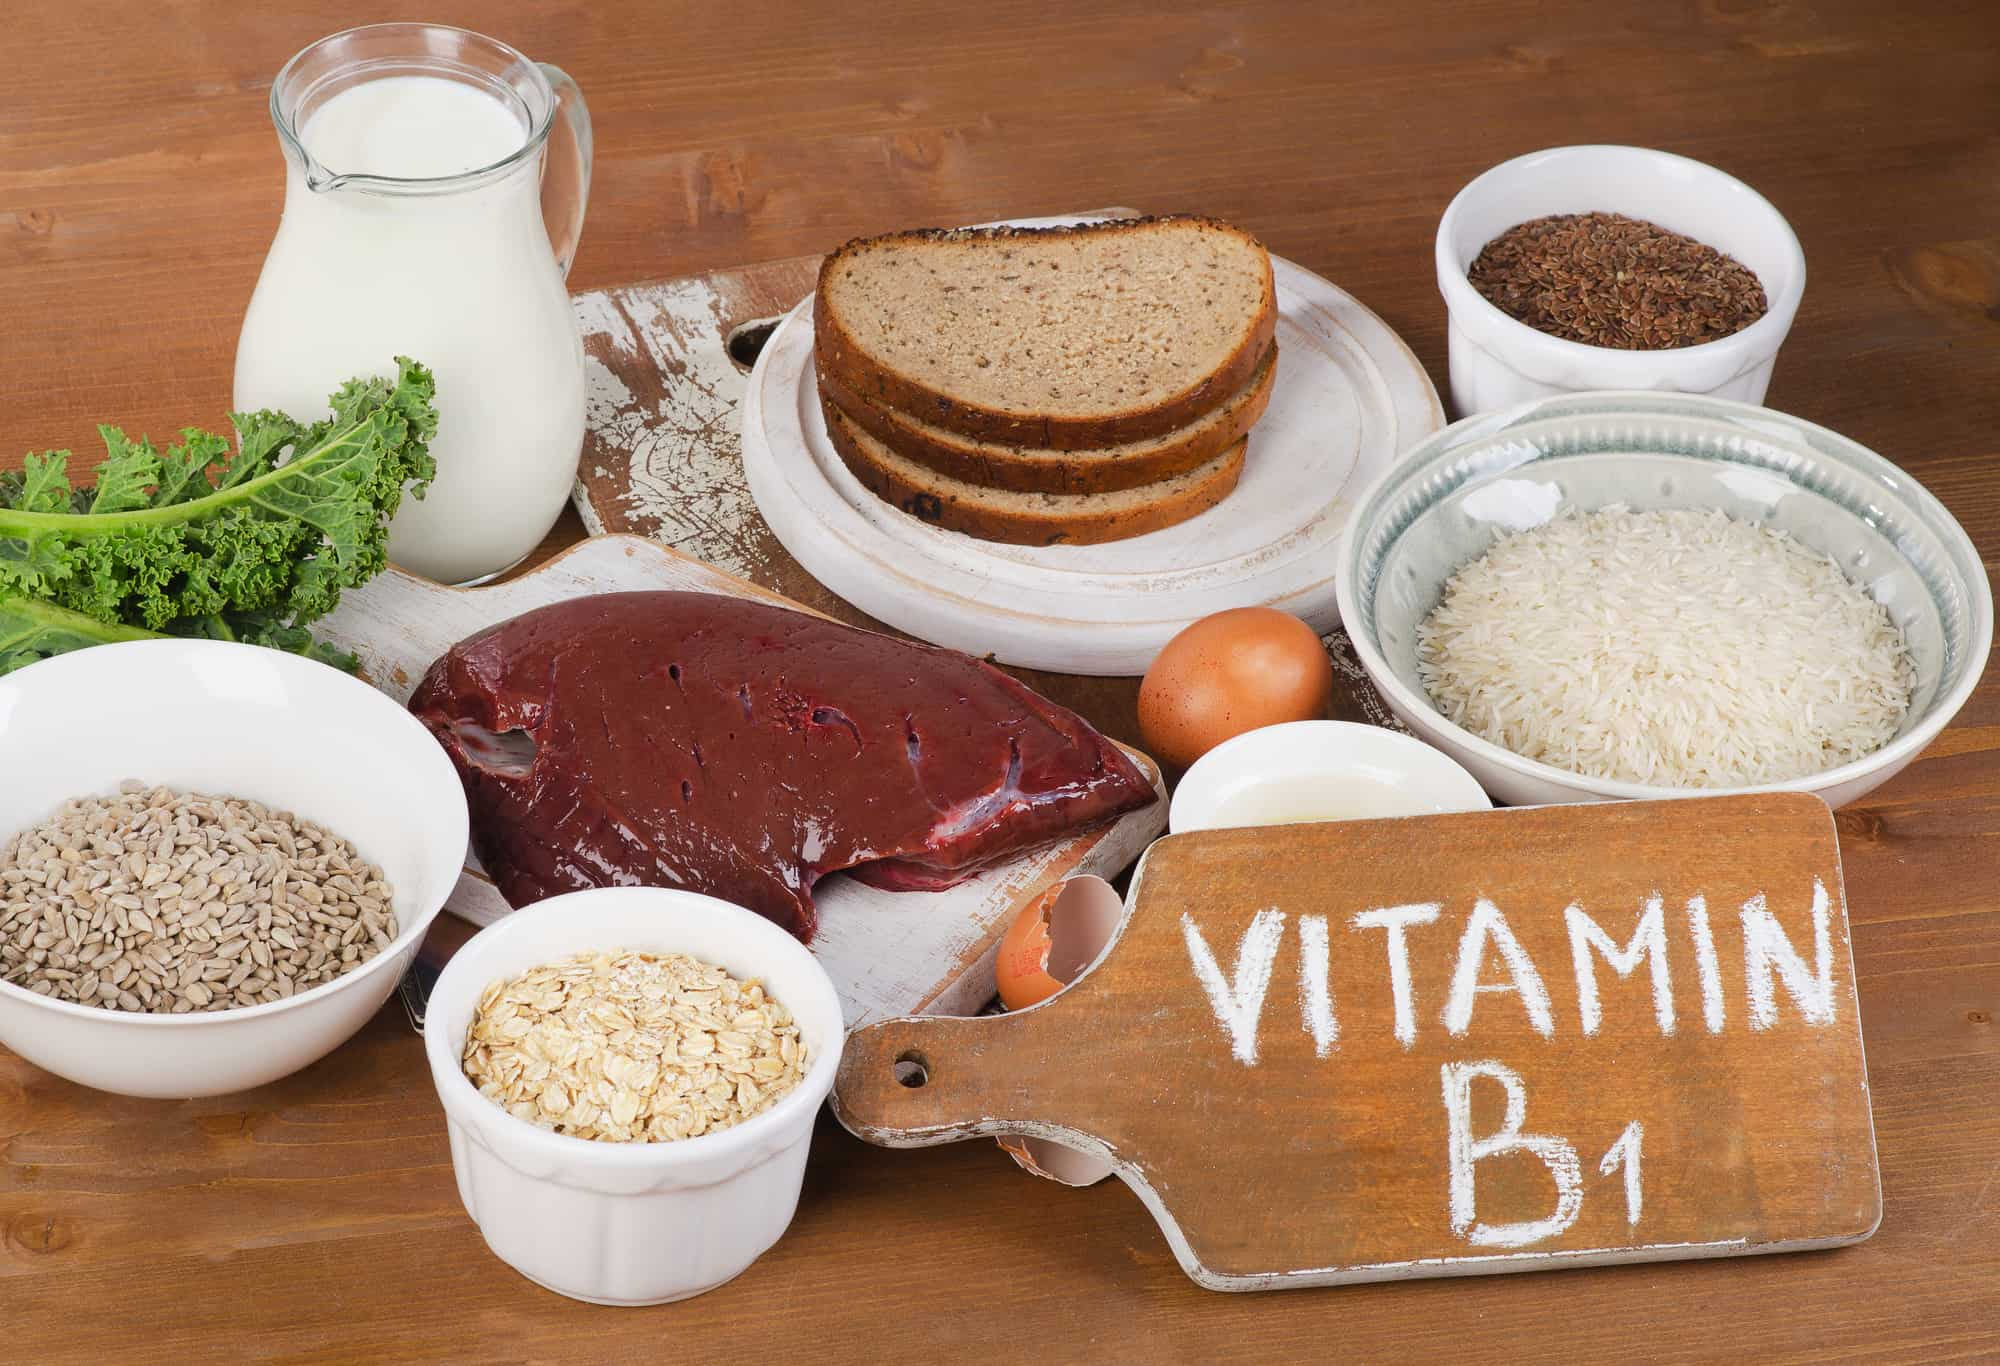 Foods Highest in Thiamin (Vitamin B1)